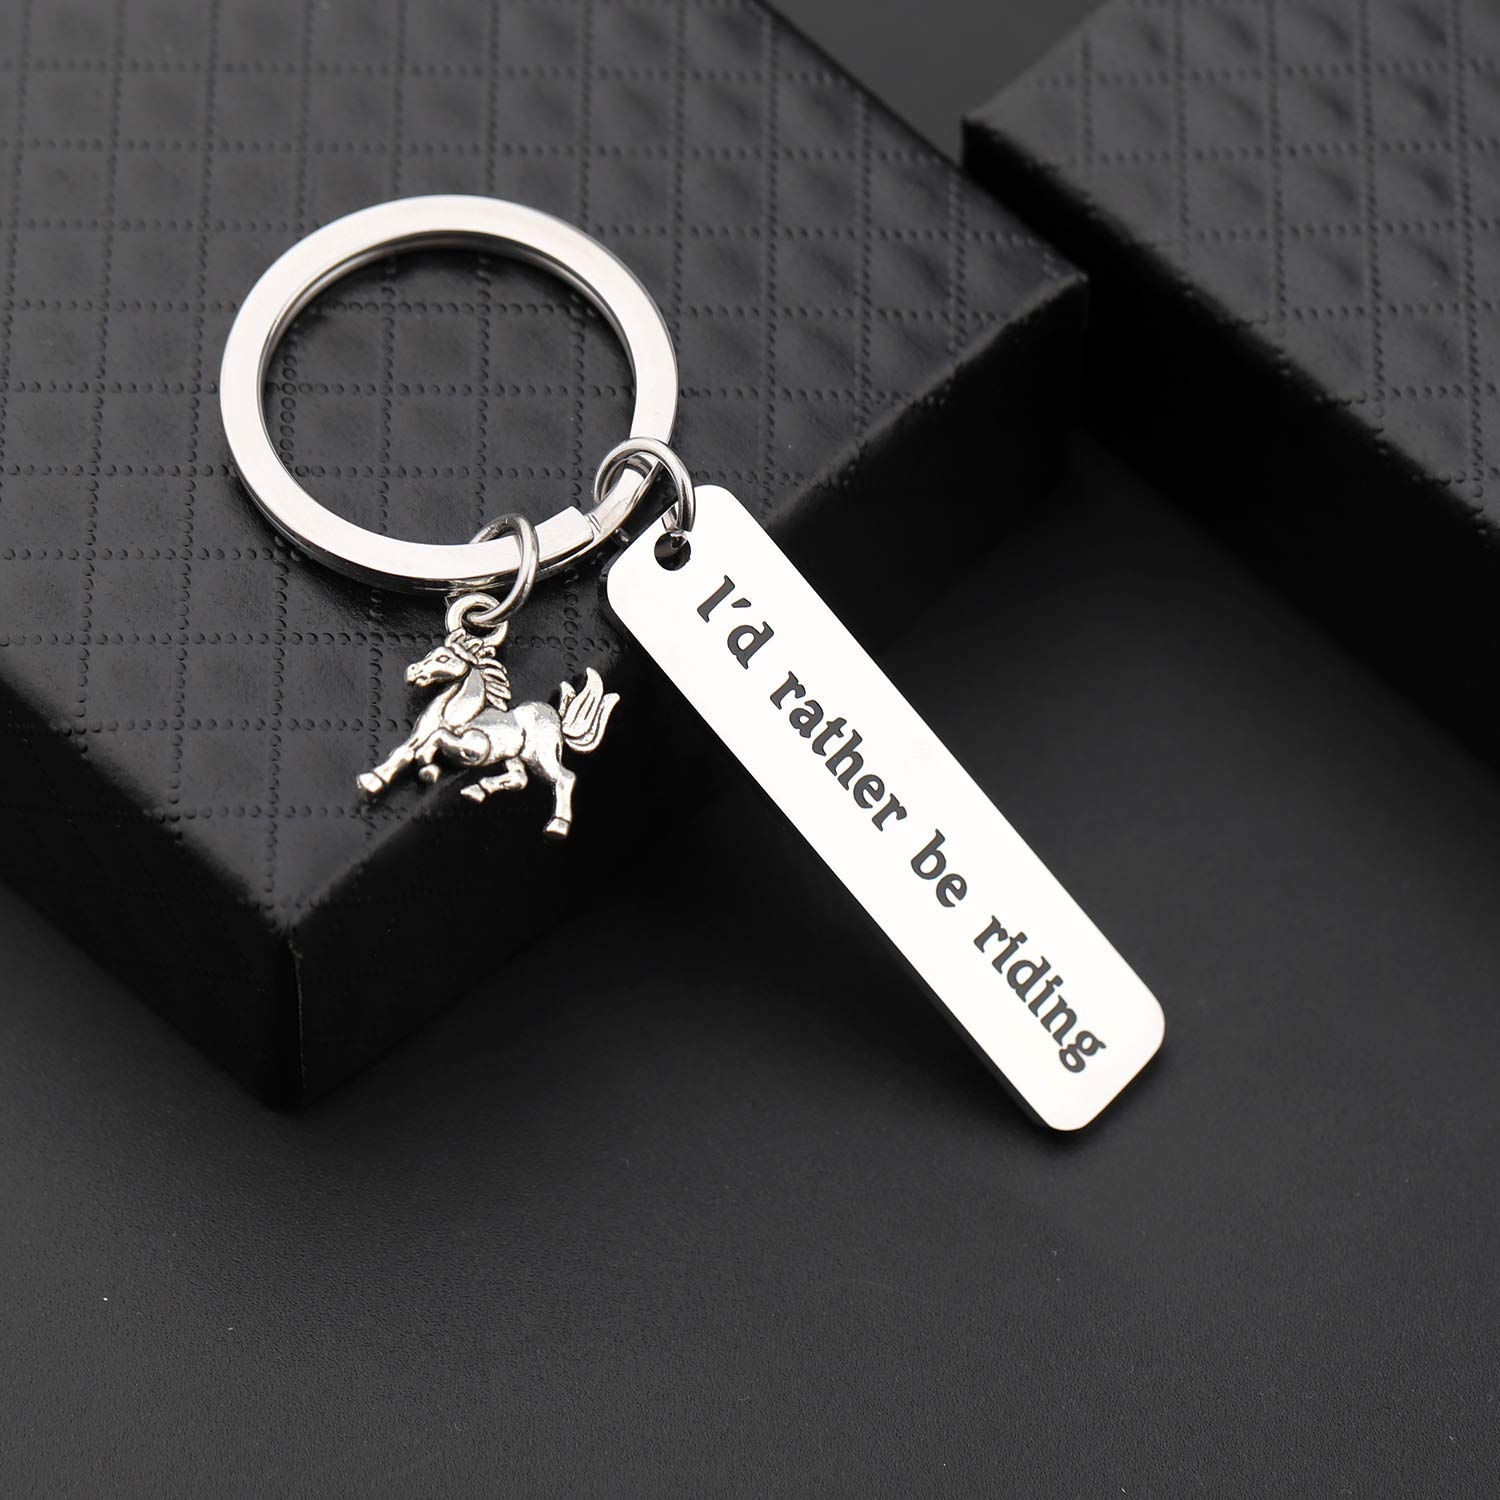 Gzrlyf Horse Keychain Id Rather be Riding Horse Equestrian Gifts for Horse Lovers